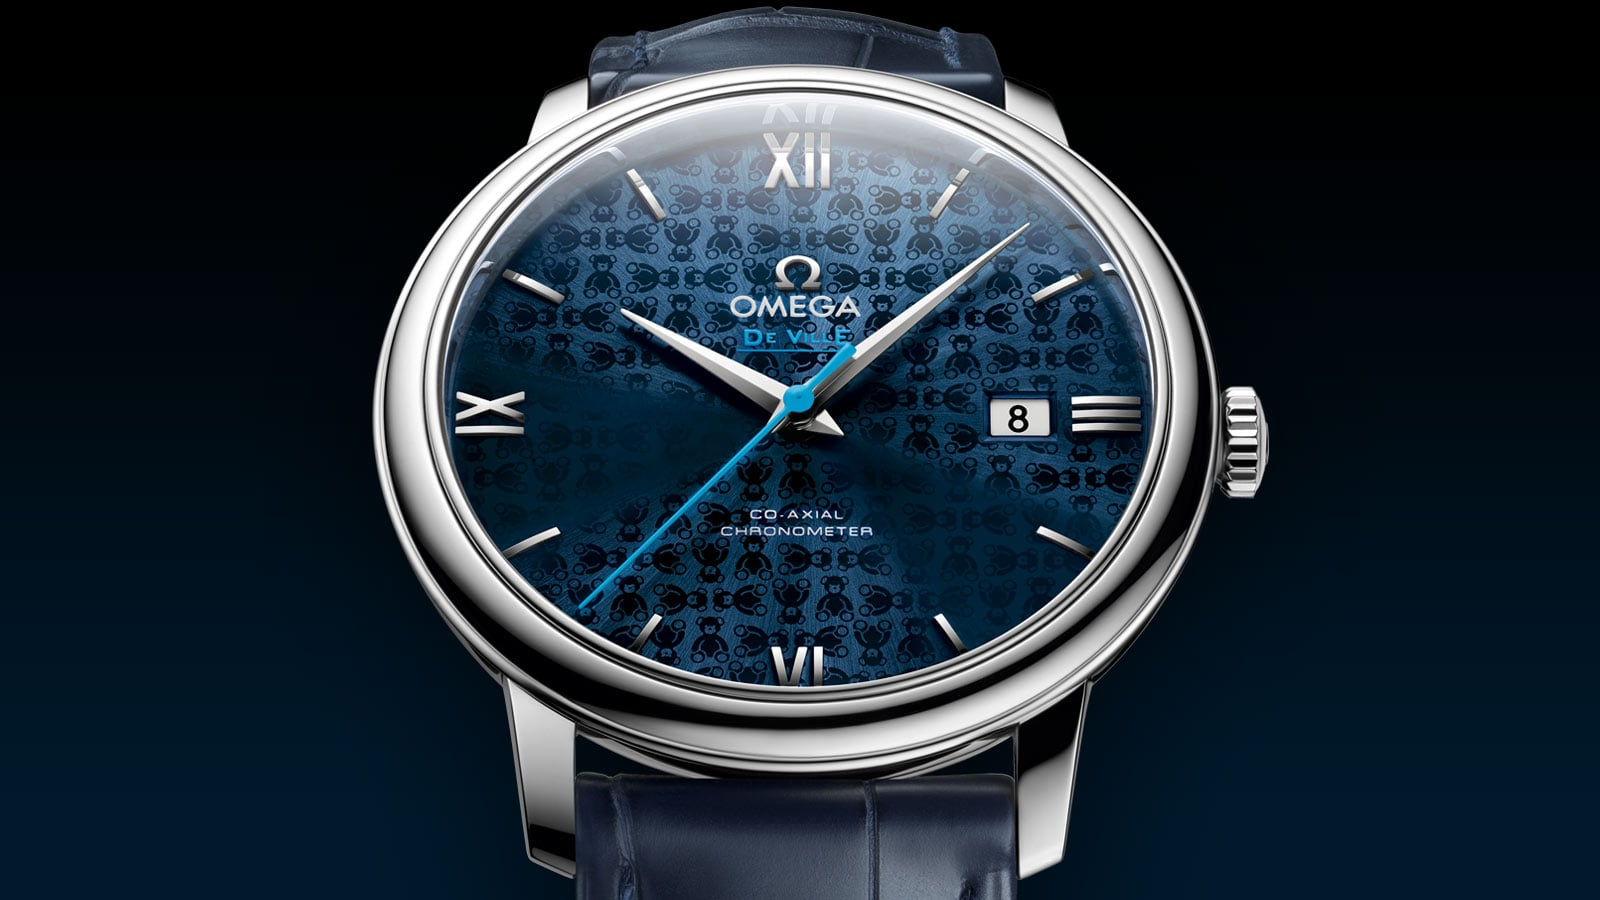 Elegant Orbis watch with a stainless steel case and iconic dark blue dial